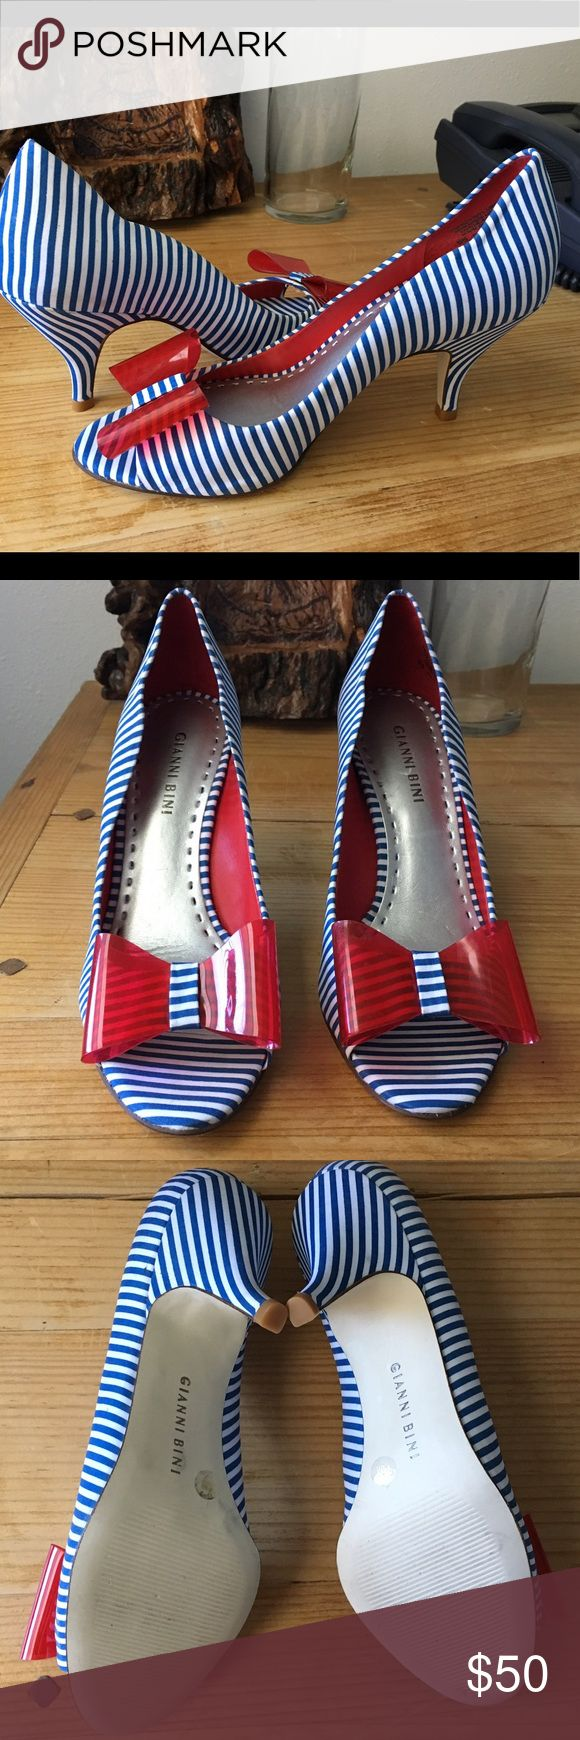 Nautical pumps Gianni Bini nautical pumps with cute red bow. Size 7.5.  New without box! So cute! Gianni Bini Shoes Heels